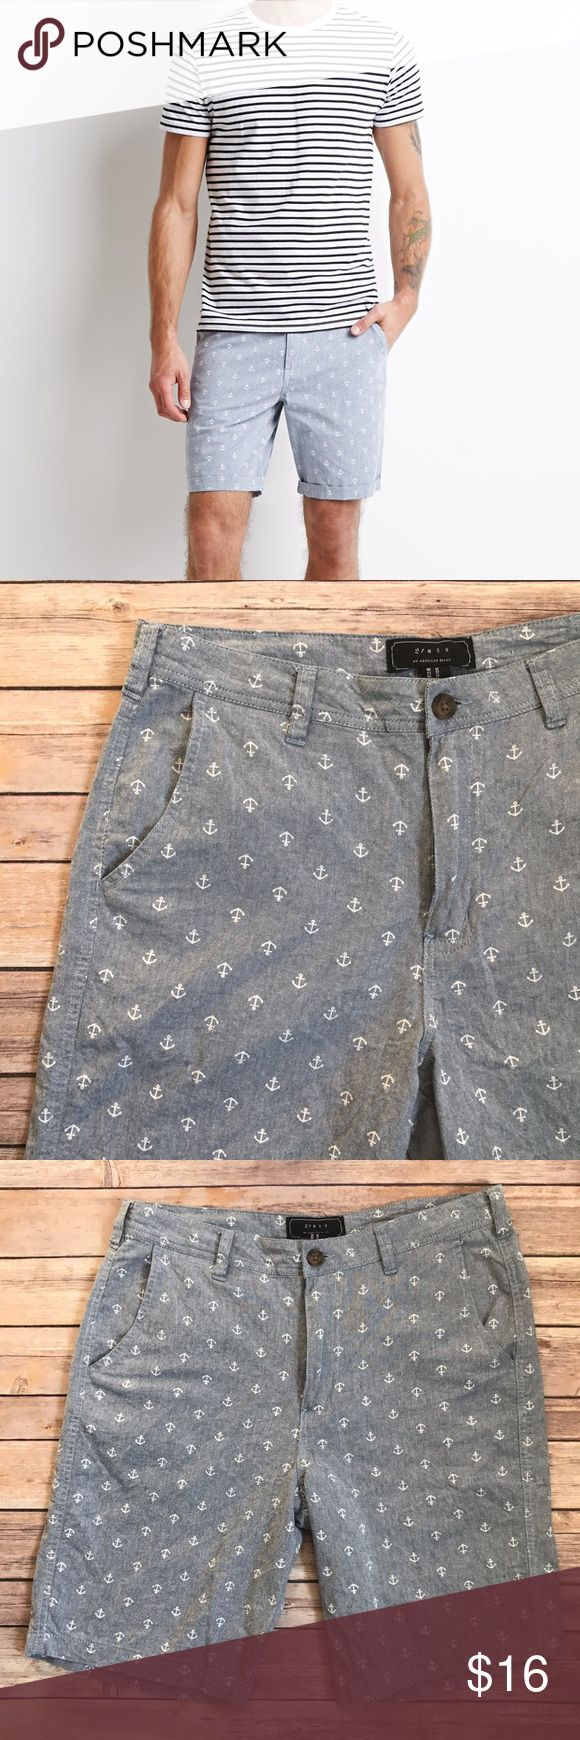 """21 Men Anchor Print Blue Shorts 32 C1 Length: 21""""  Back pockets   Condition: No Rips; No Stains  100% Cotton   📦I ship orders within 24 Hours! {Except Weekends}📦  🚫No Trades🚫No Holds🚫 21men Shorts Flat Front"""